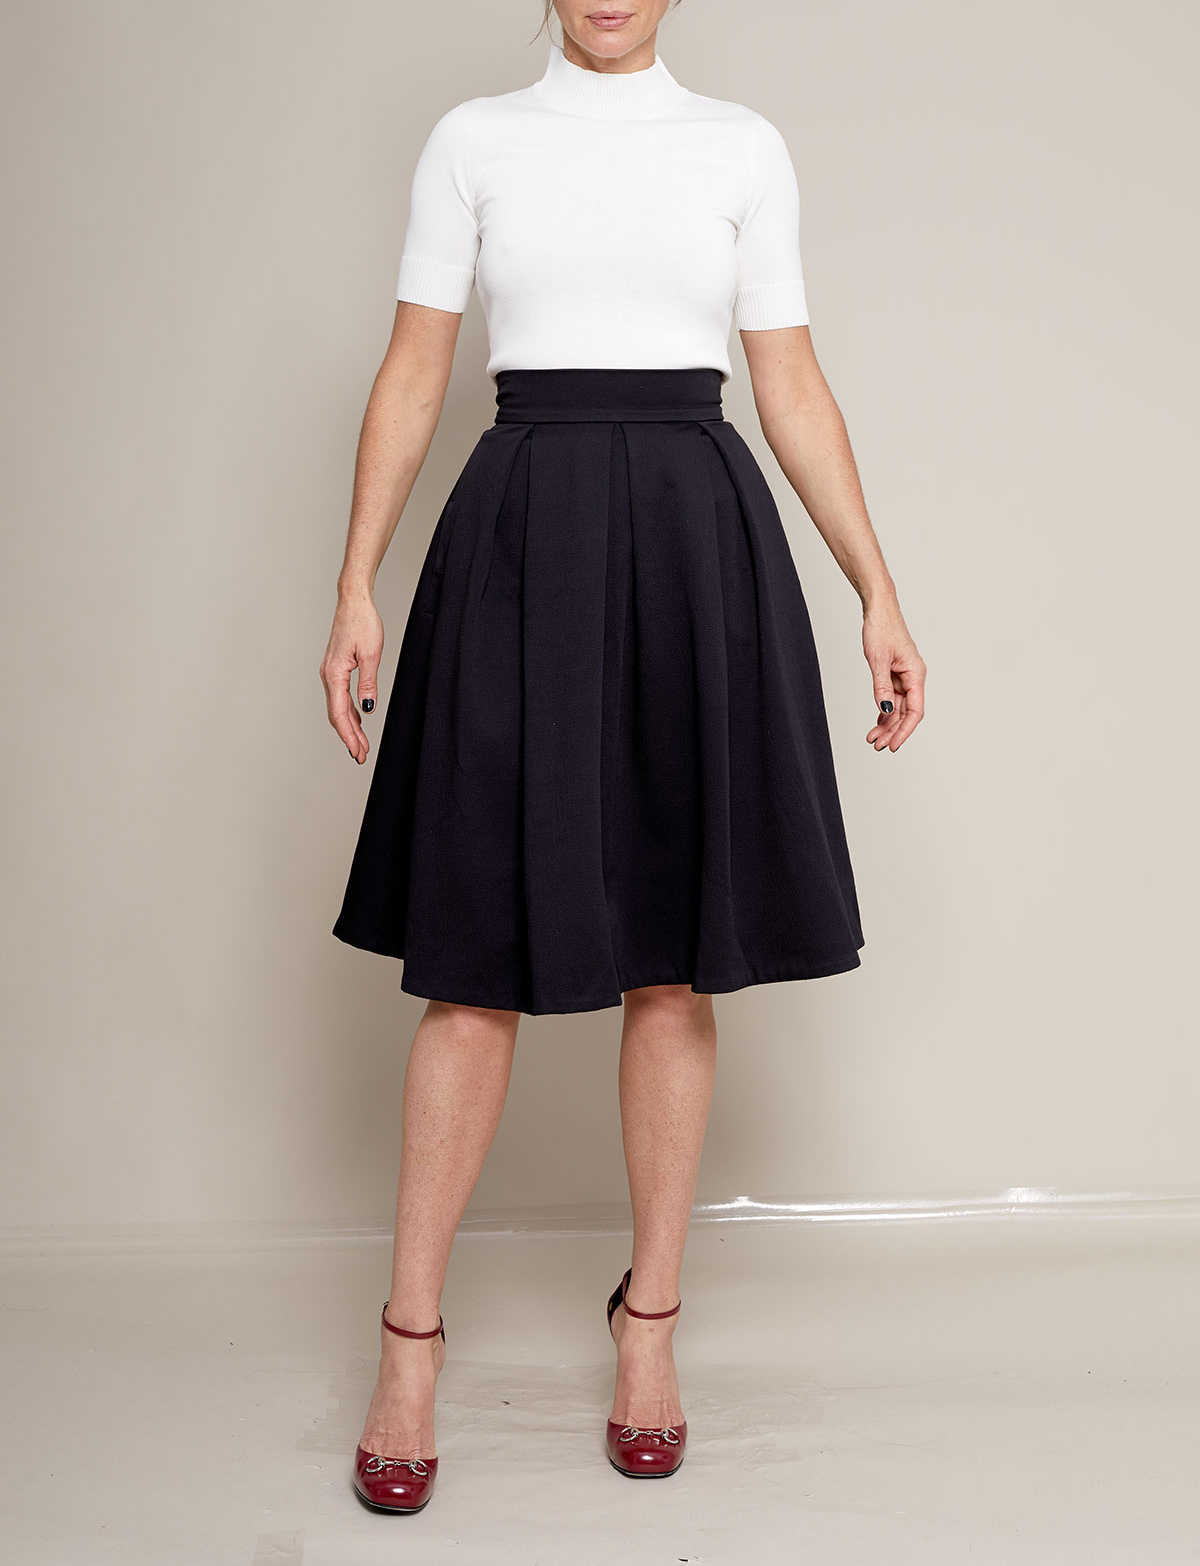 Just Patterns Stephanie Skirt 1.jpg